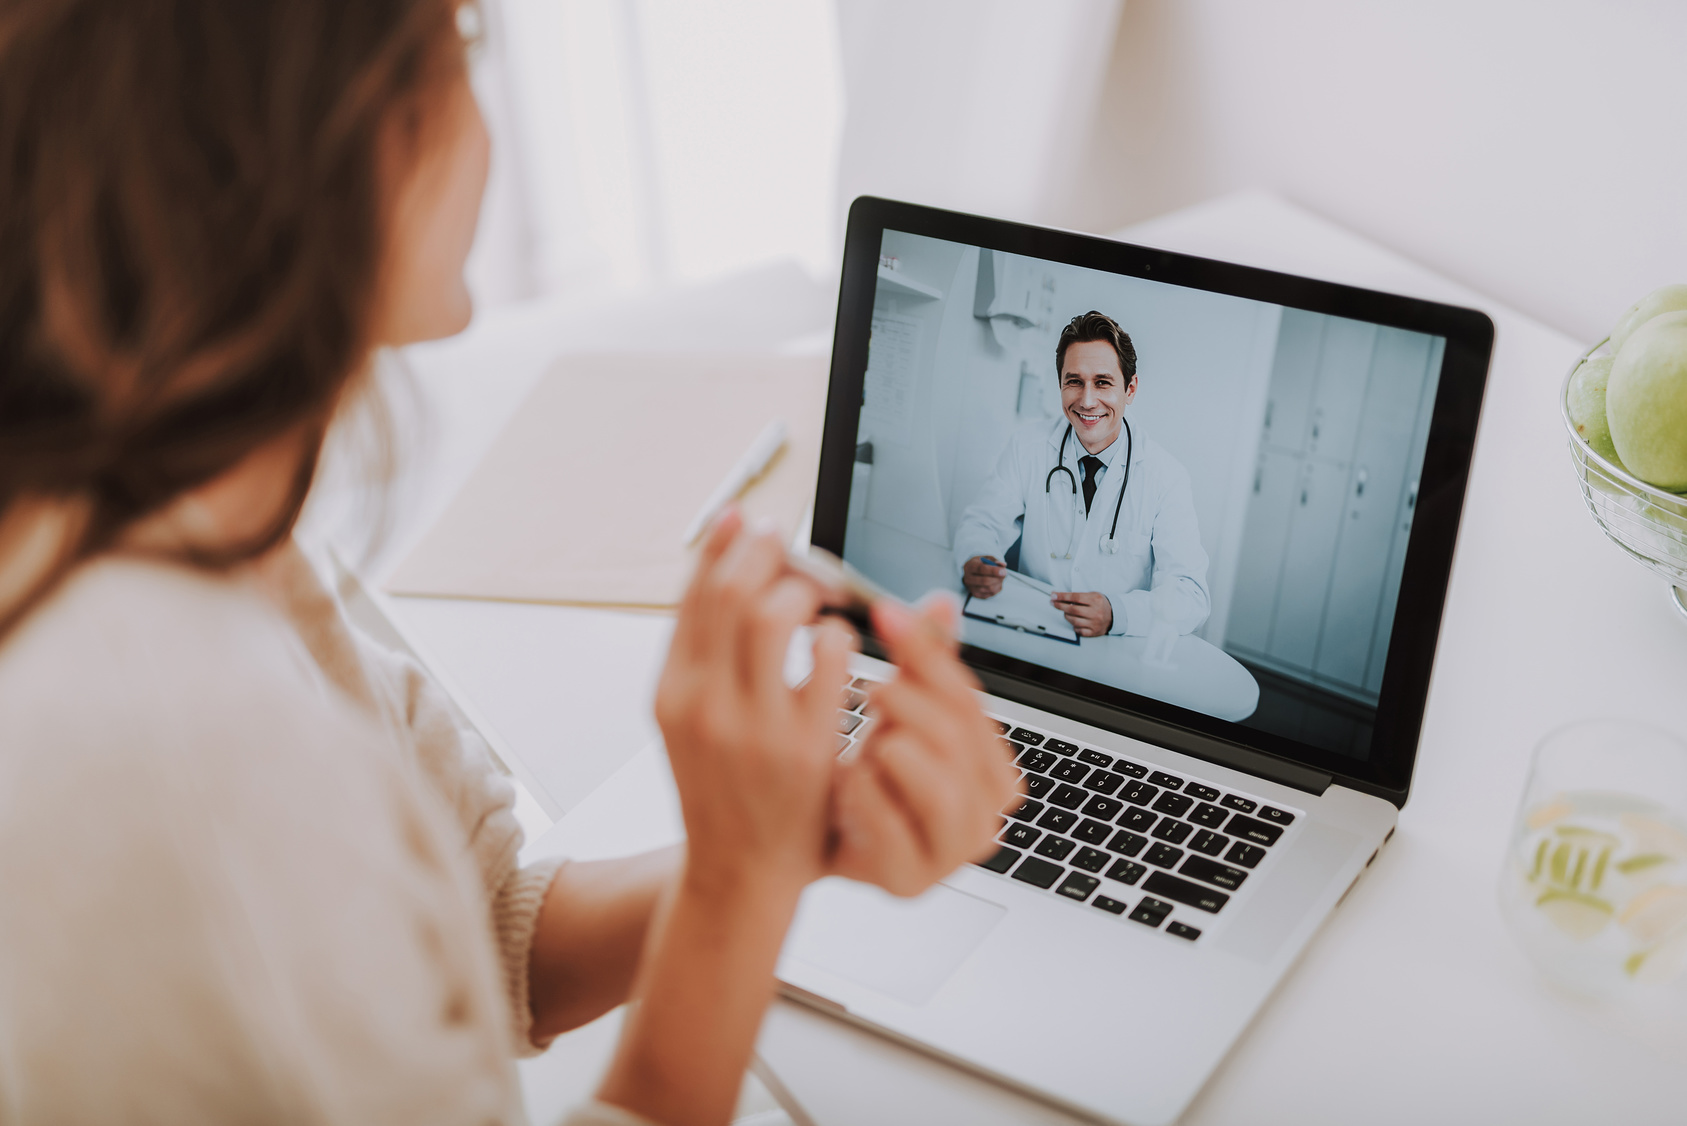 How Has the Introduction of Telemedicine Influenced Health Outcomes?